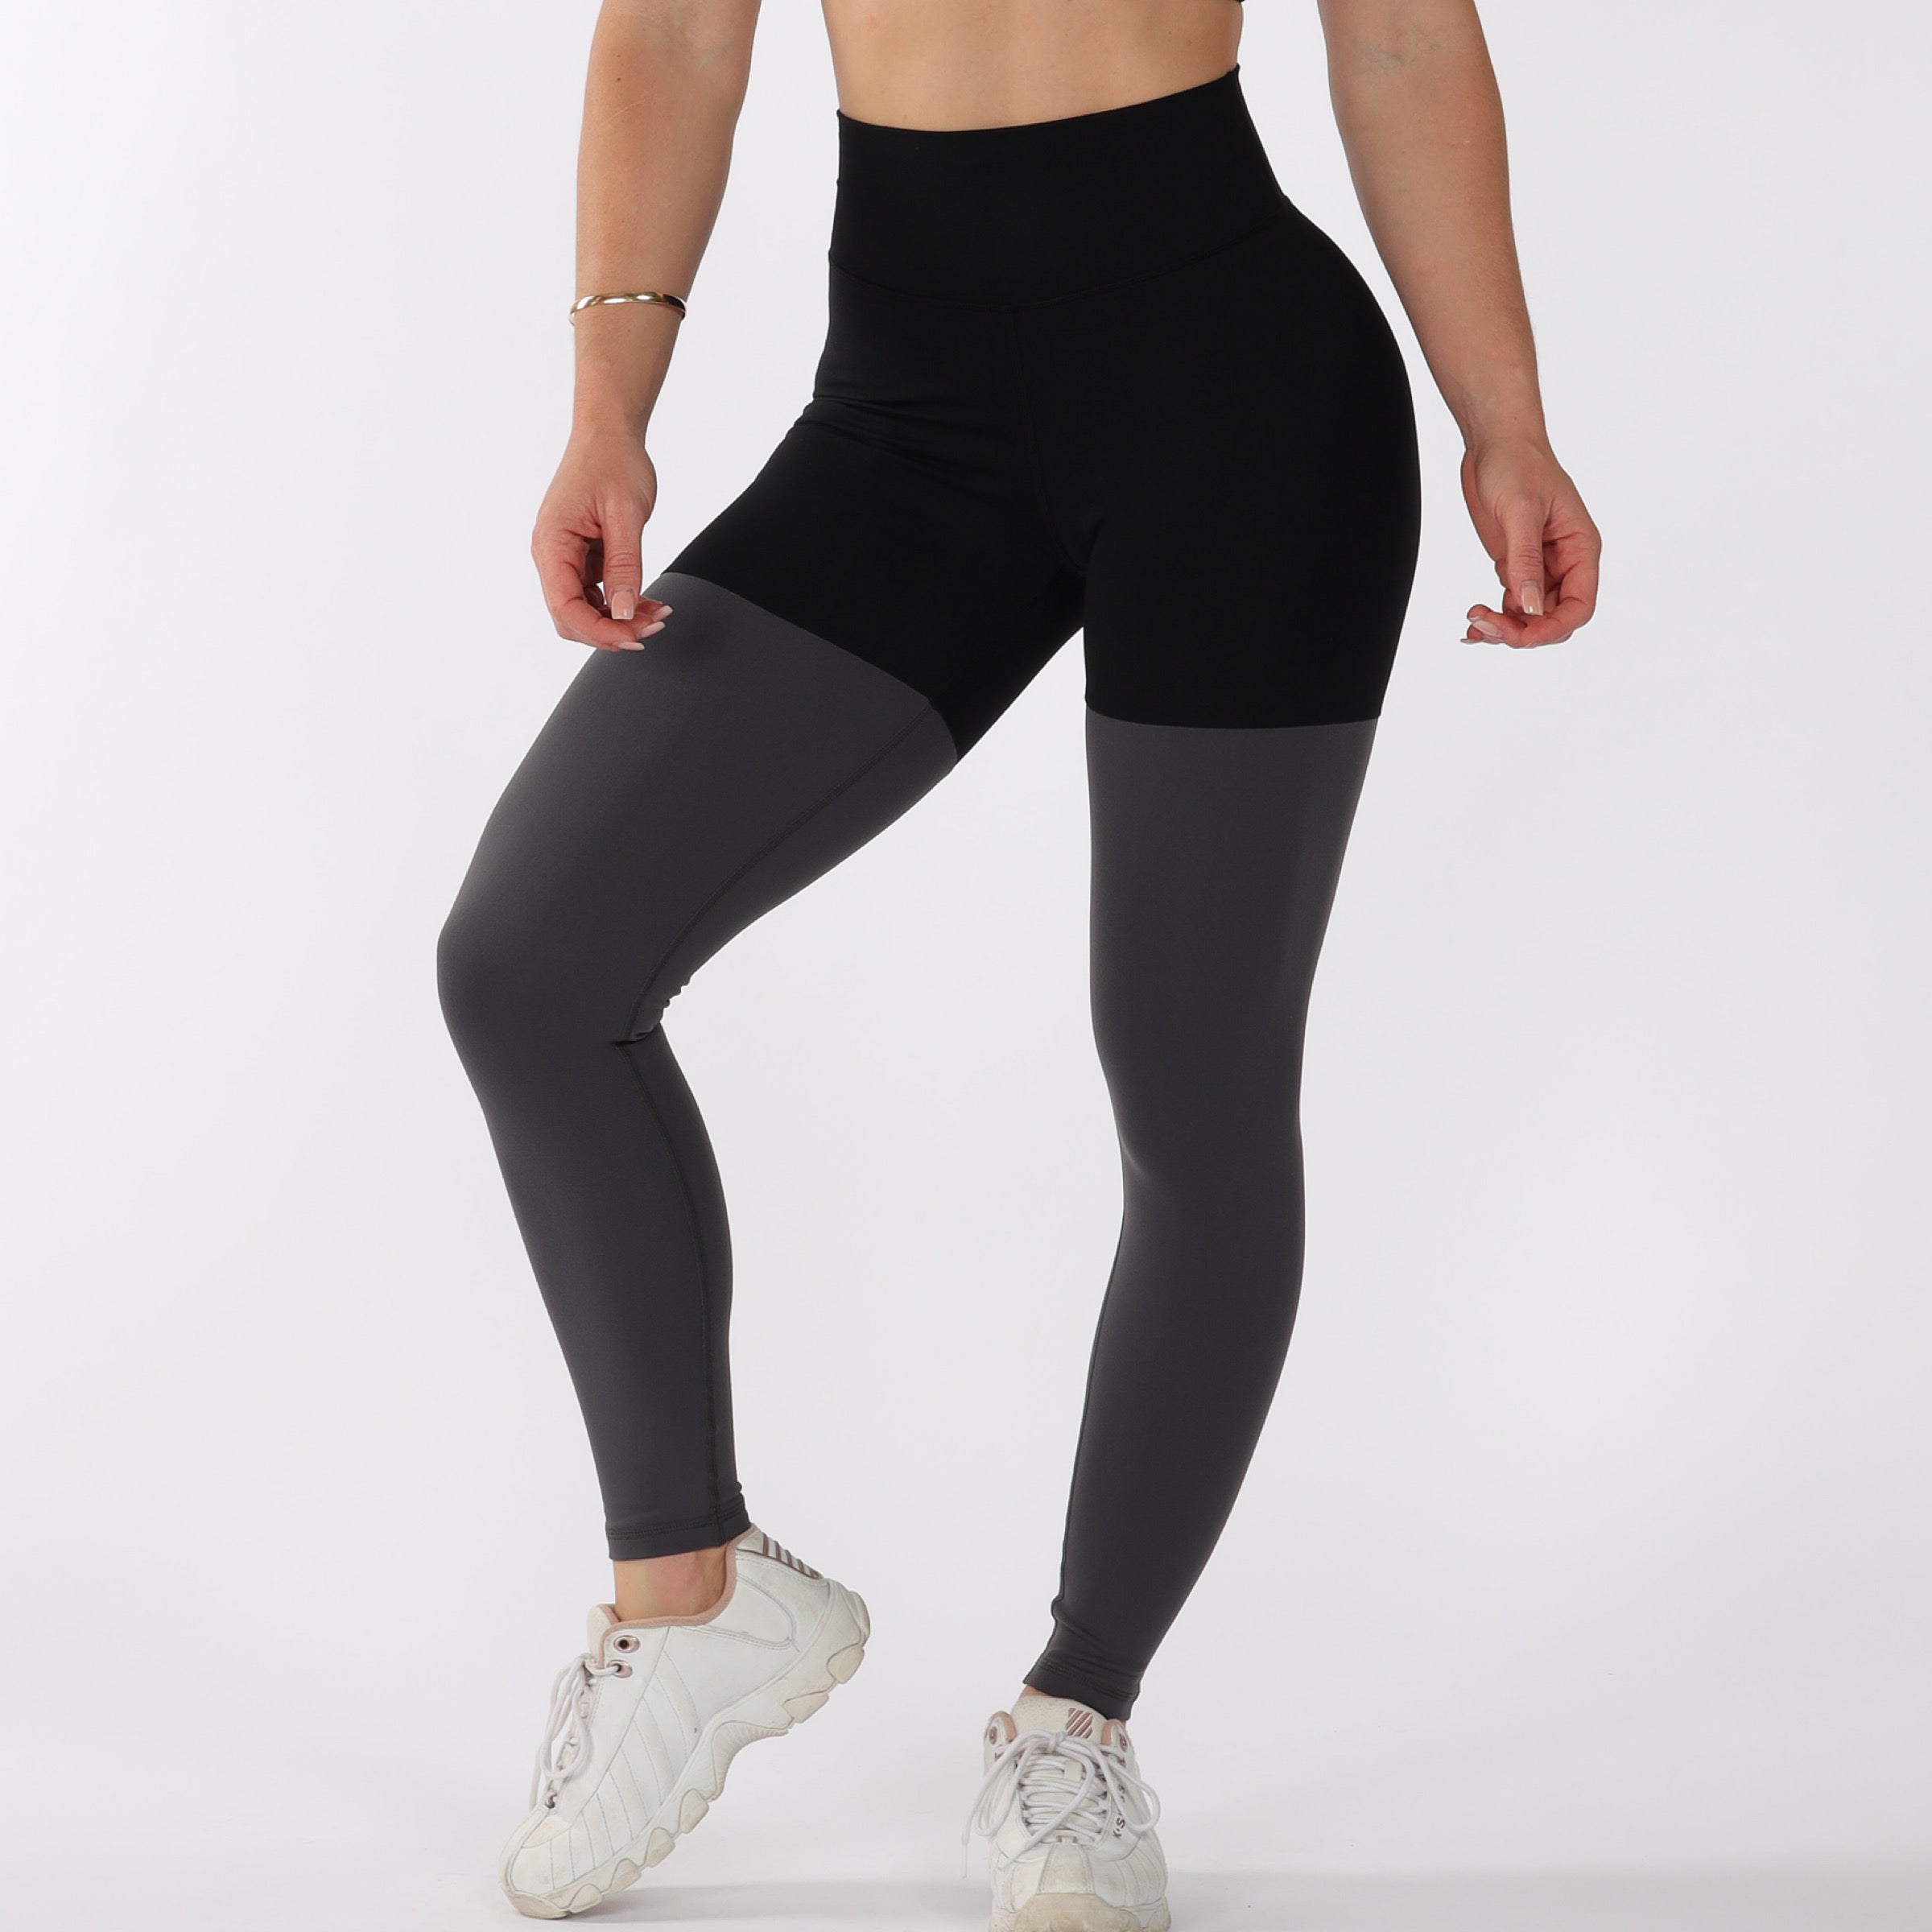 FULL LENGTH 2 TONE SCRUNCH BUM - BLACK/GREY